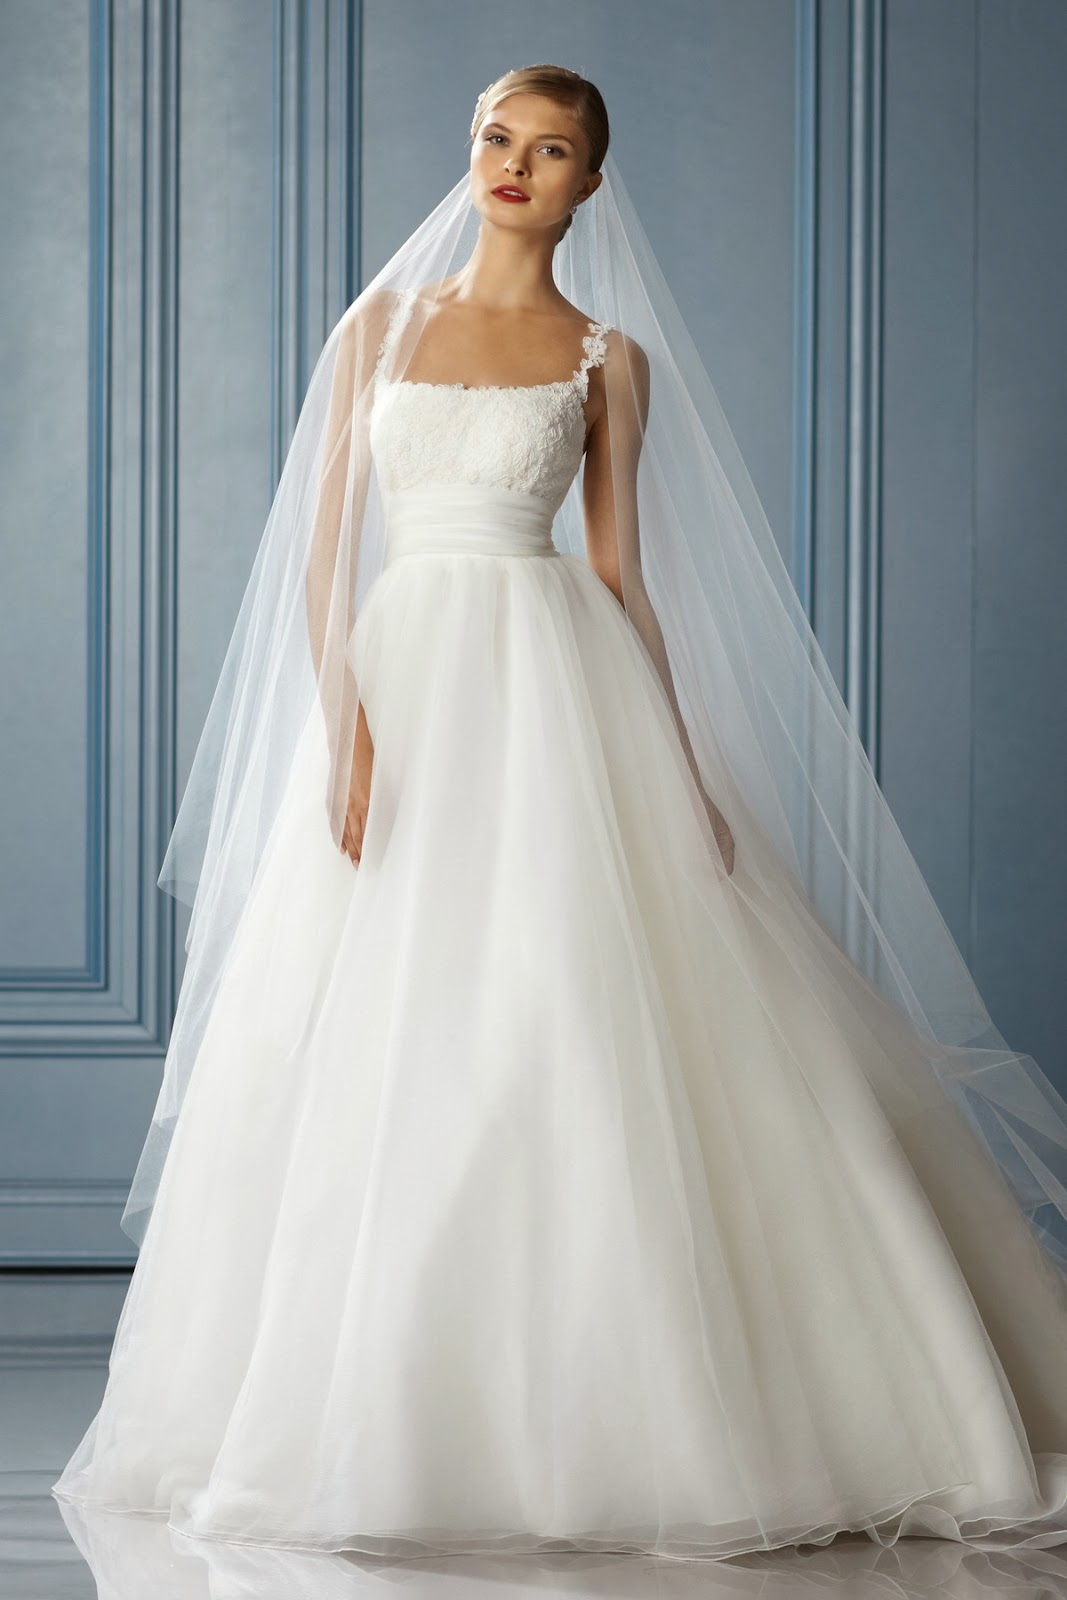 Expensive wedding dresses wedding plan ideas for Image of wedding dresses